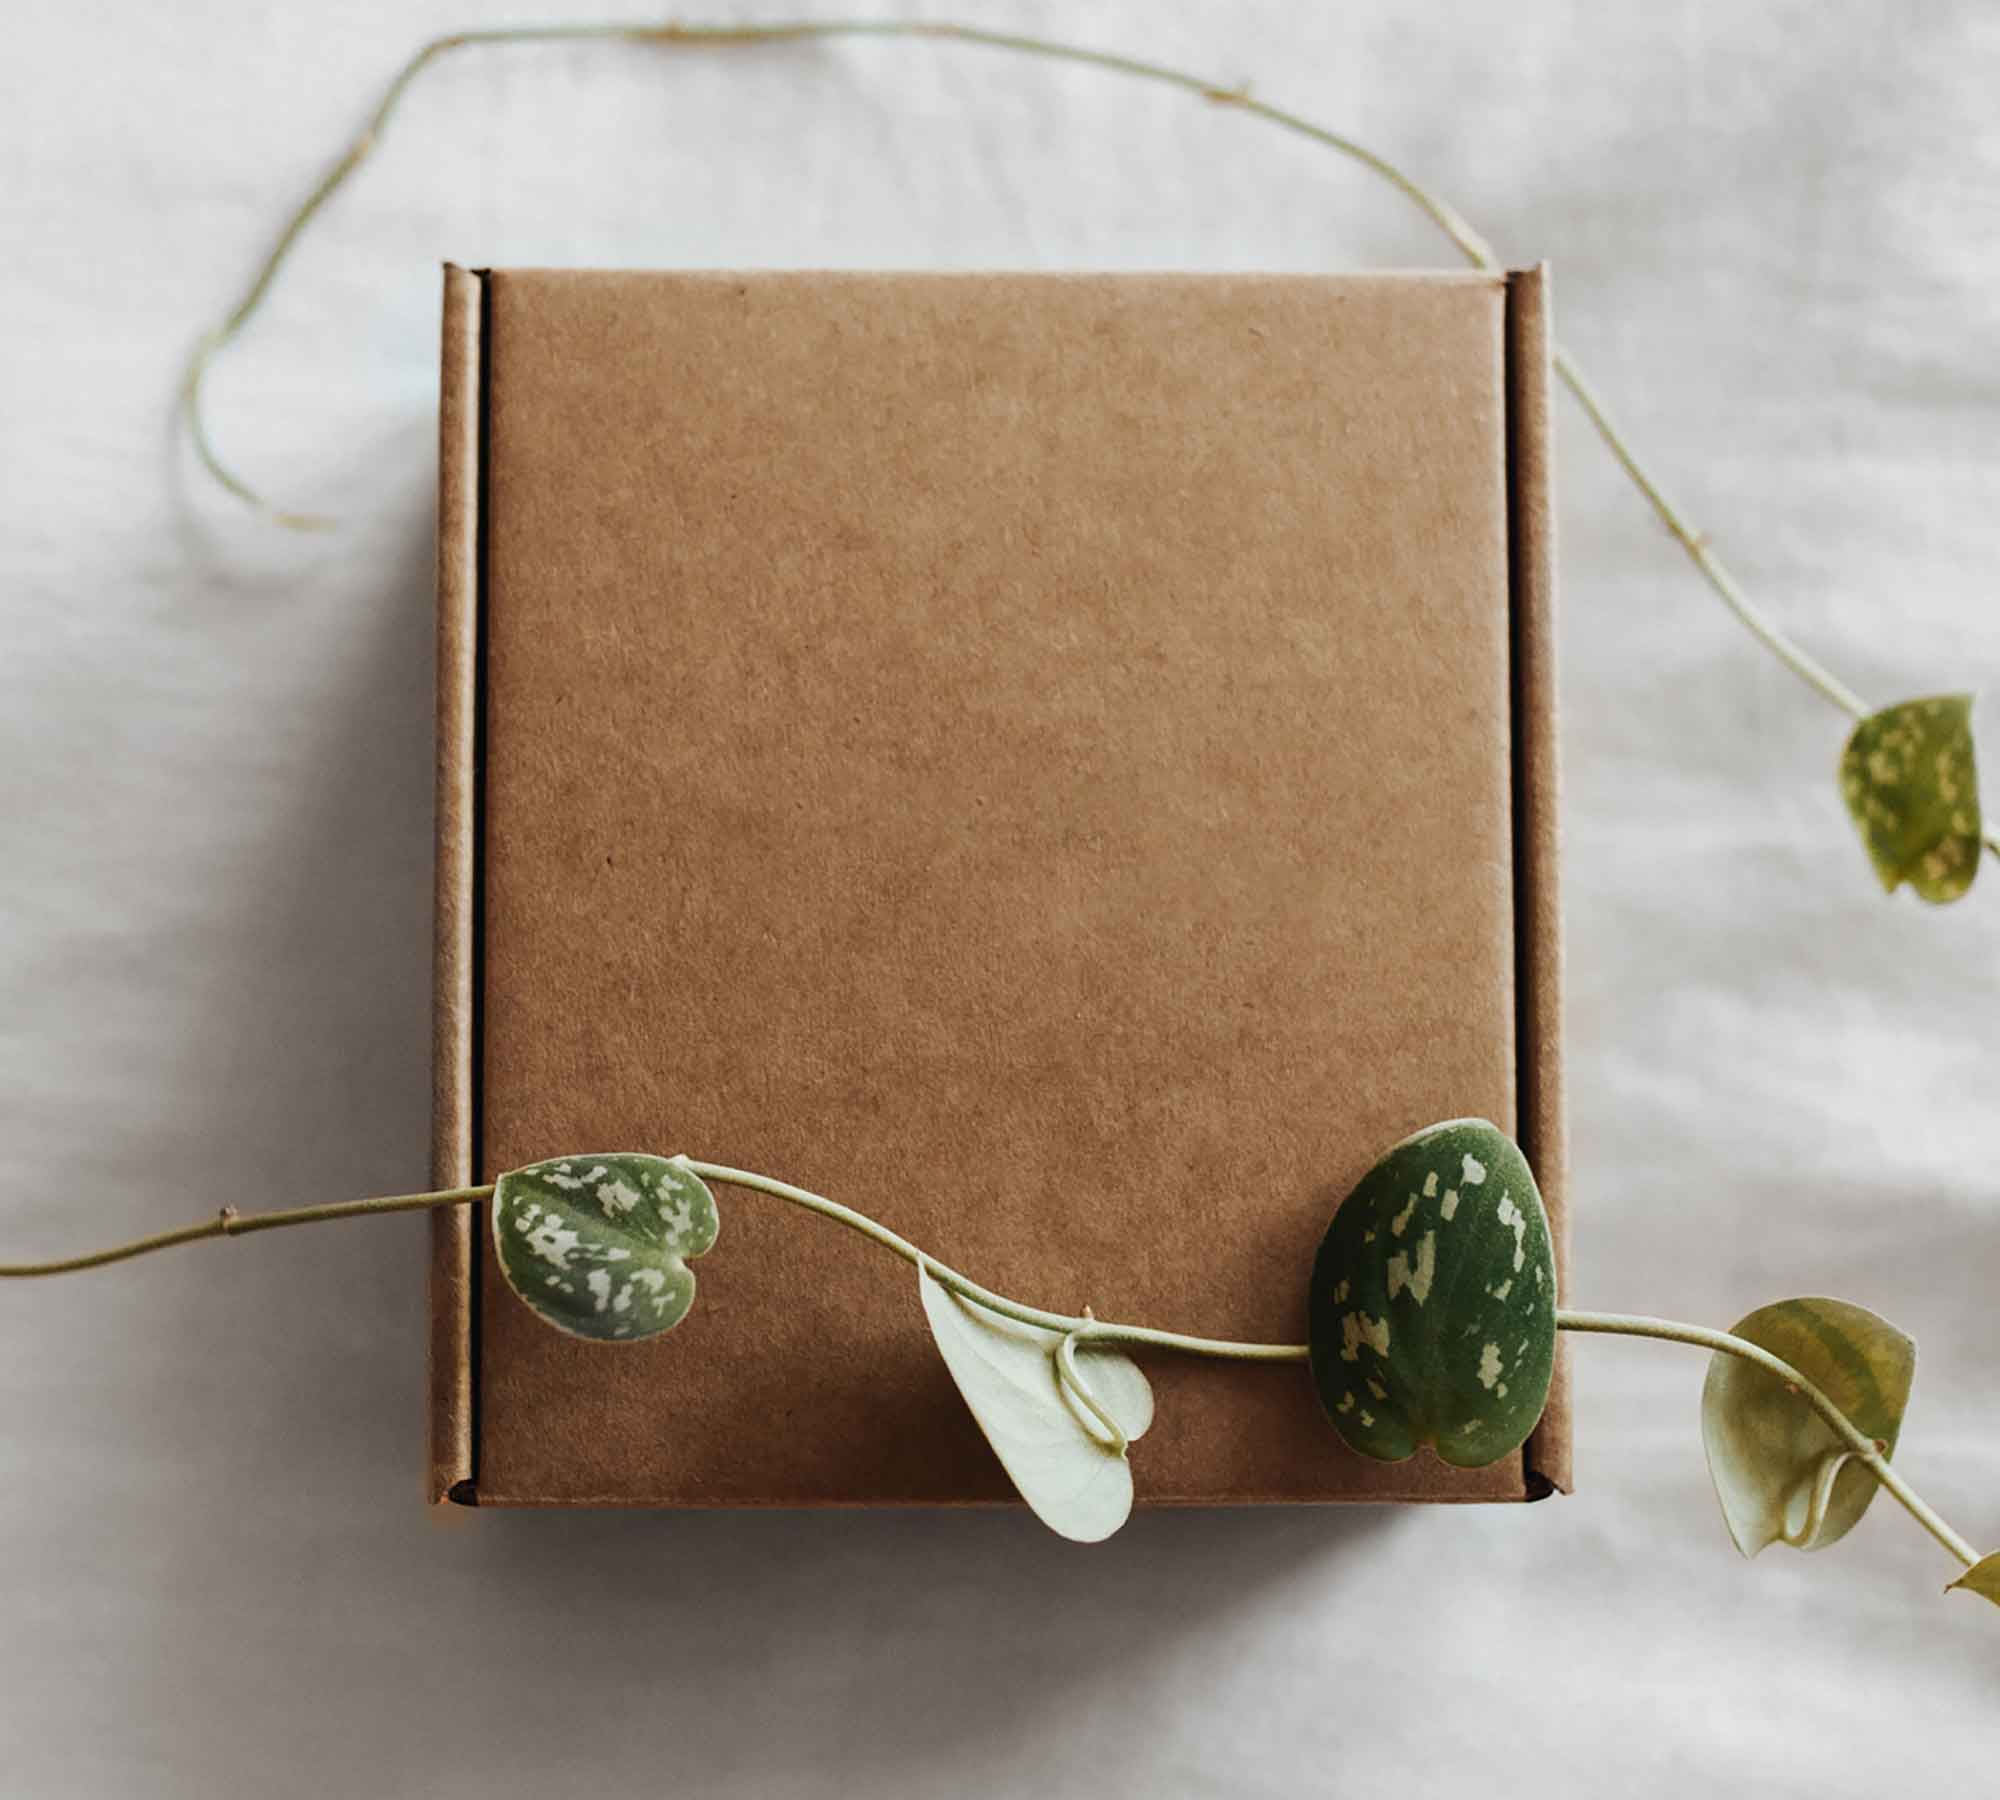 Craft Paper Box Mockup 2